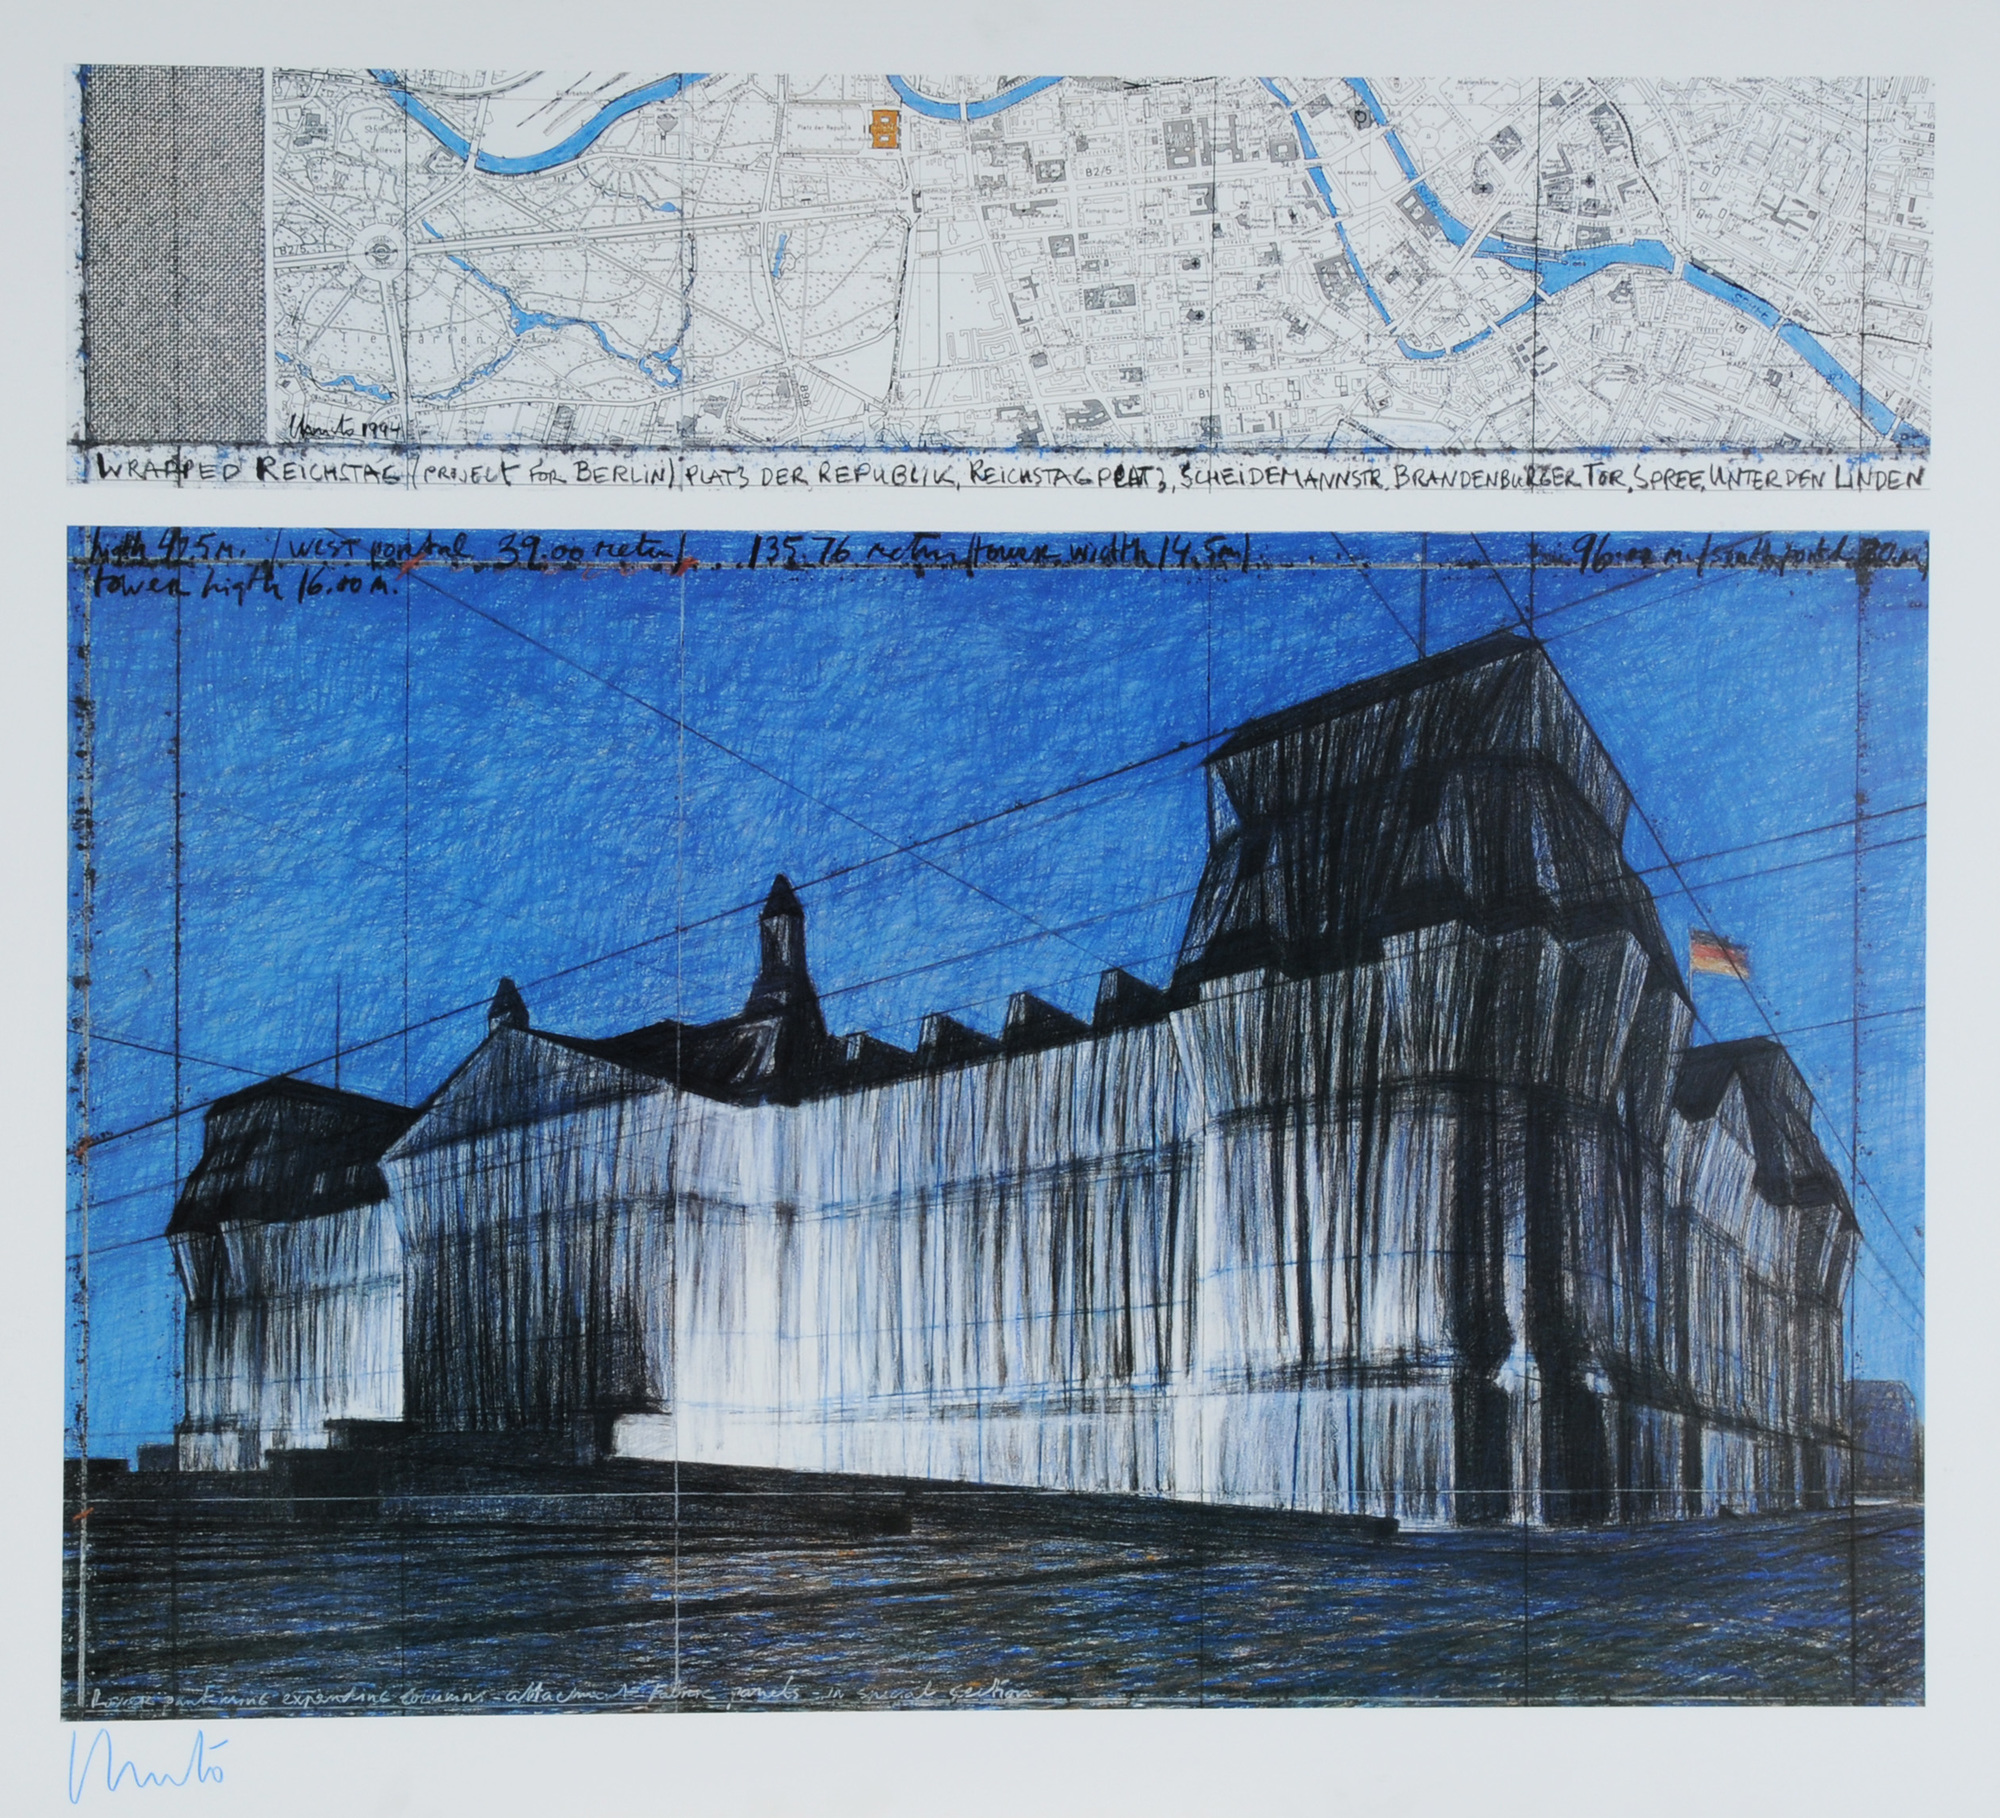 Christo, Wrapped Reichstag (Project for Berlin), Platz der Republik